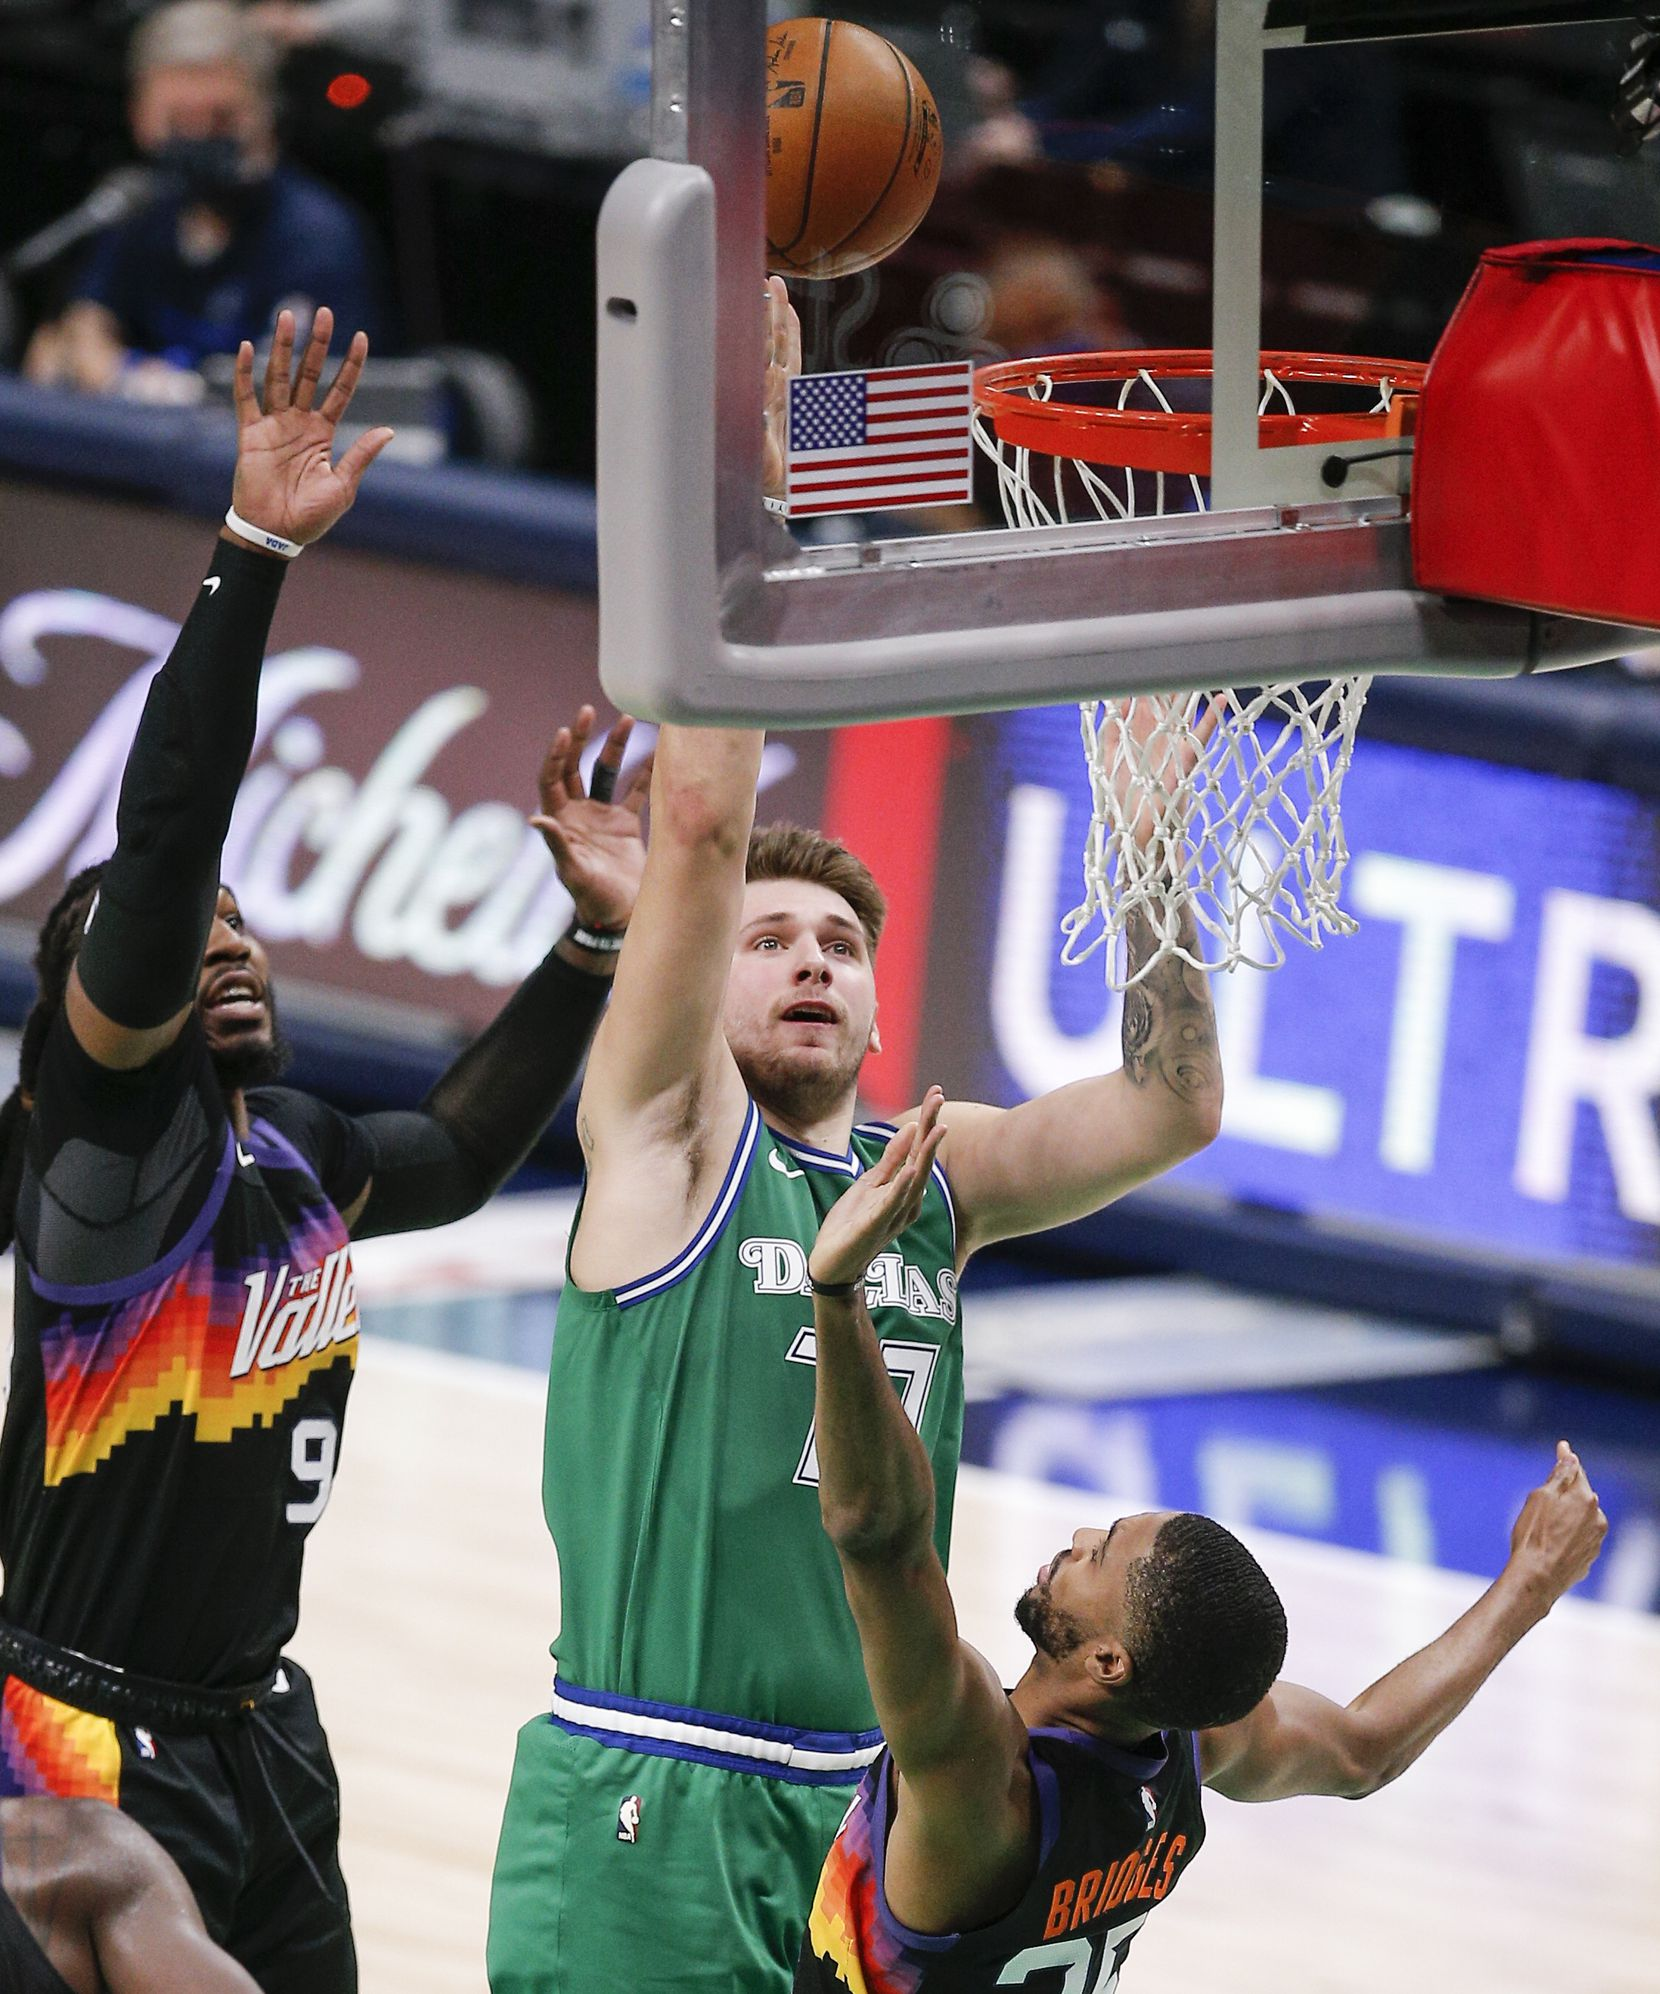 Dallas Mavericks guard Luka Doncic (77) attempts a shot as Phoenix Suns forwards Jae Crowder (99) and Mikal Bridges (25) defend during the second half of an NBA basketball game in Dallas, Saturday, January 30, 2021. Phoenix won 111-105. (Brandon Wade/Special Contributor)